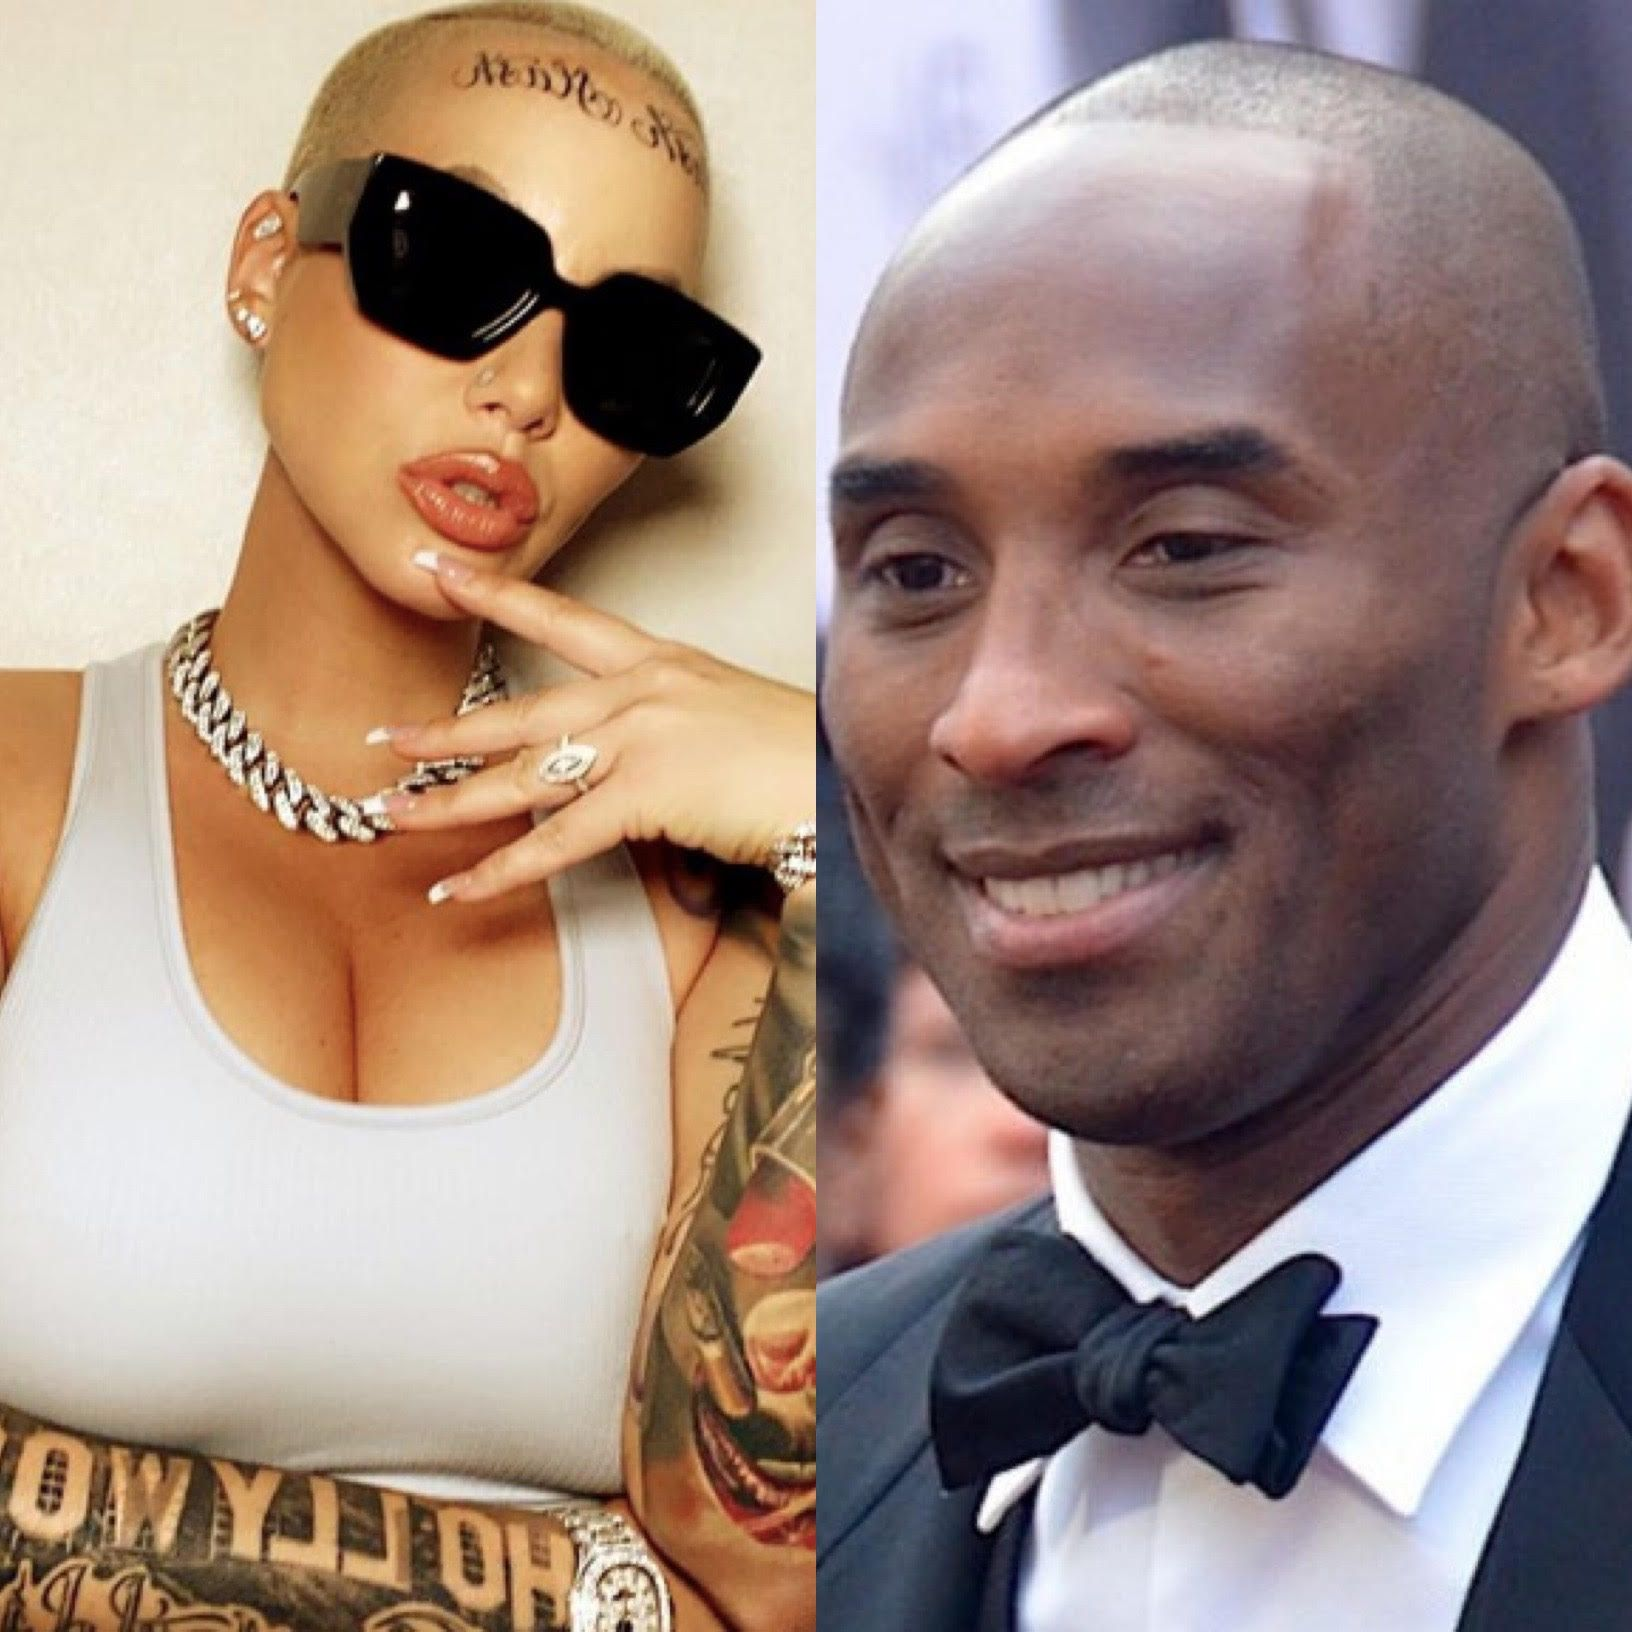 Amber Rose Reveals Kobe Bryant's Passing Led To Her